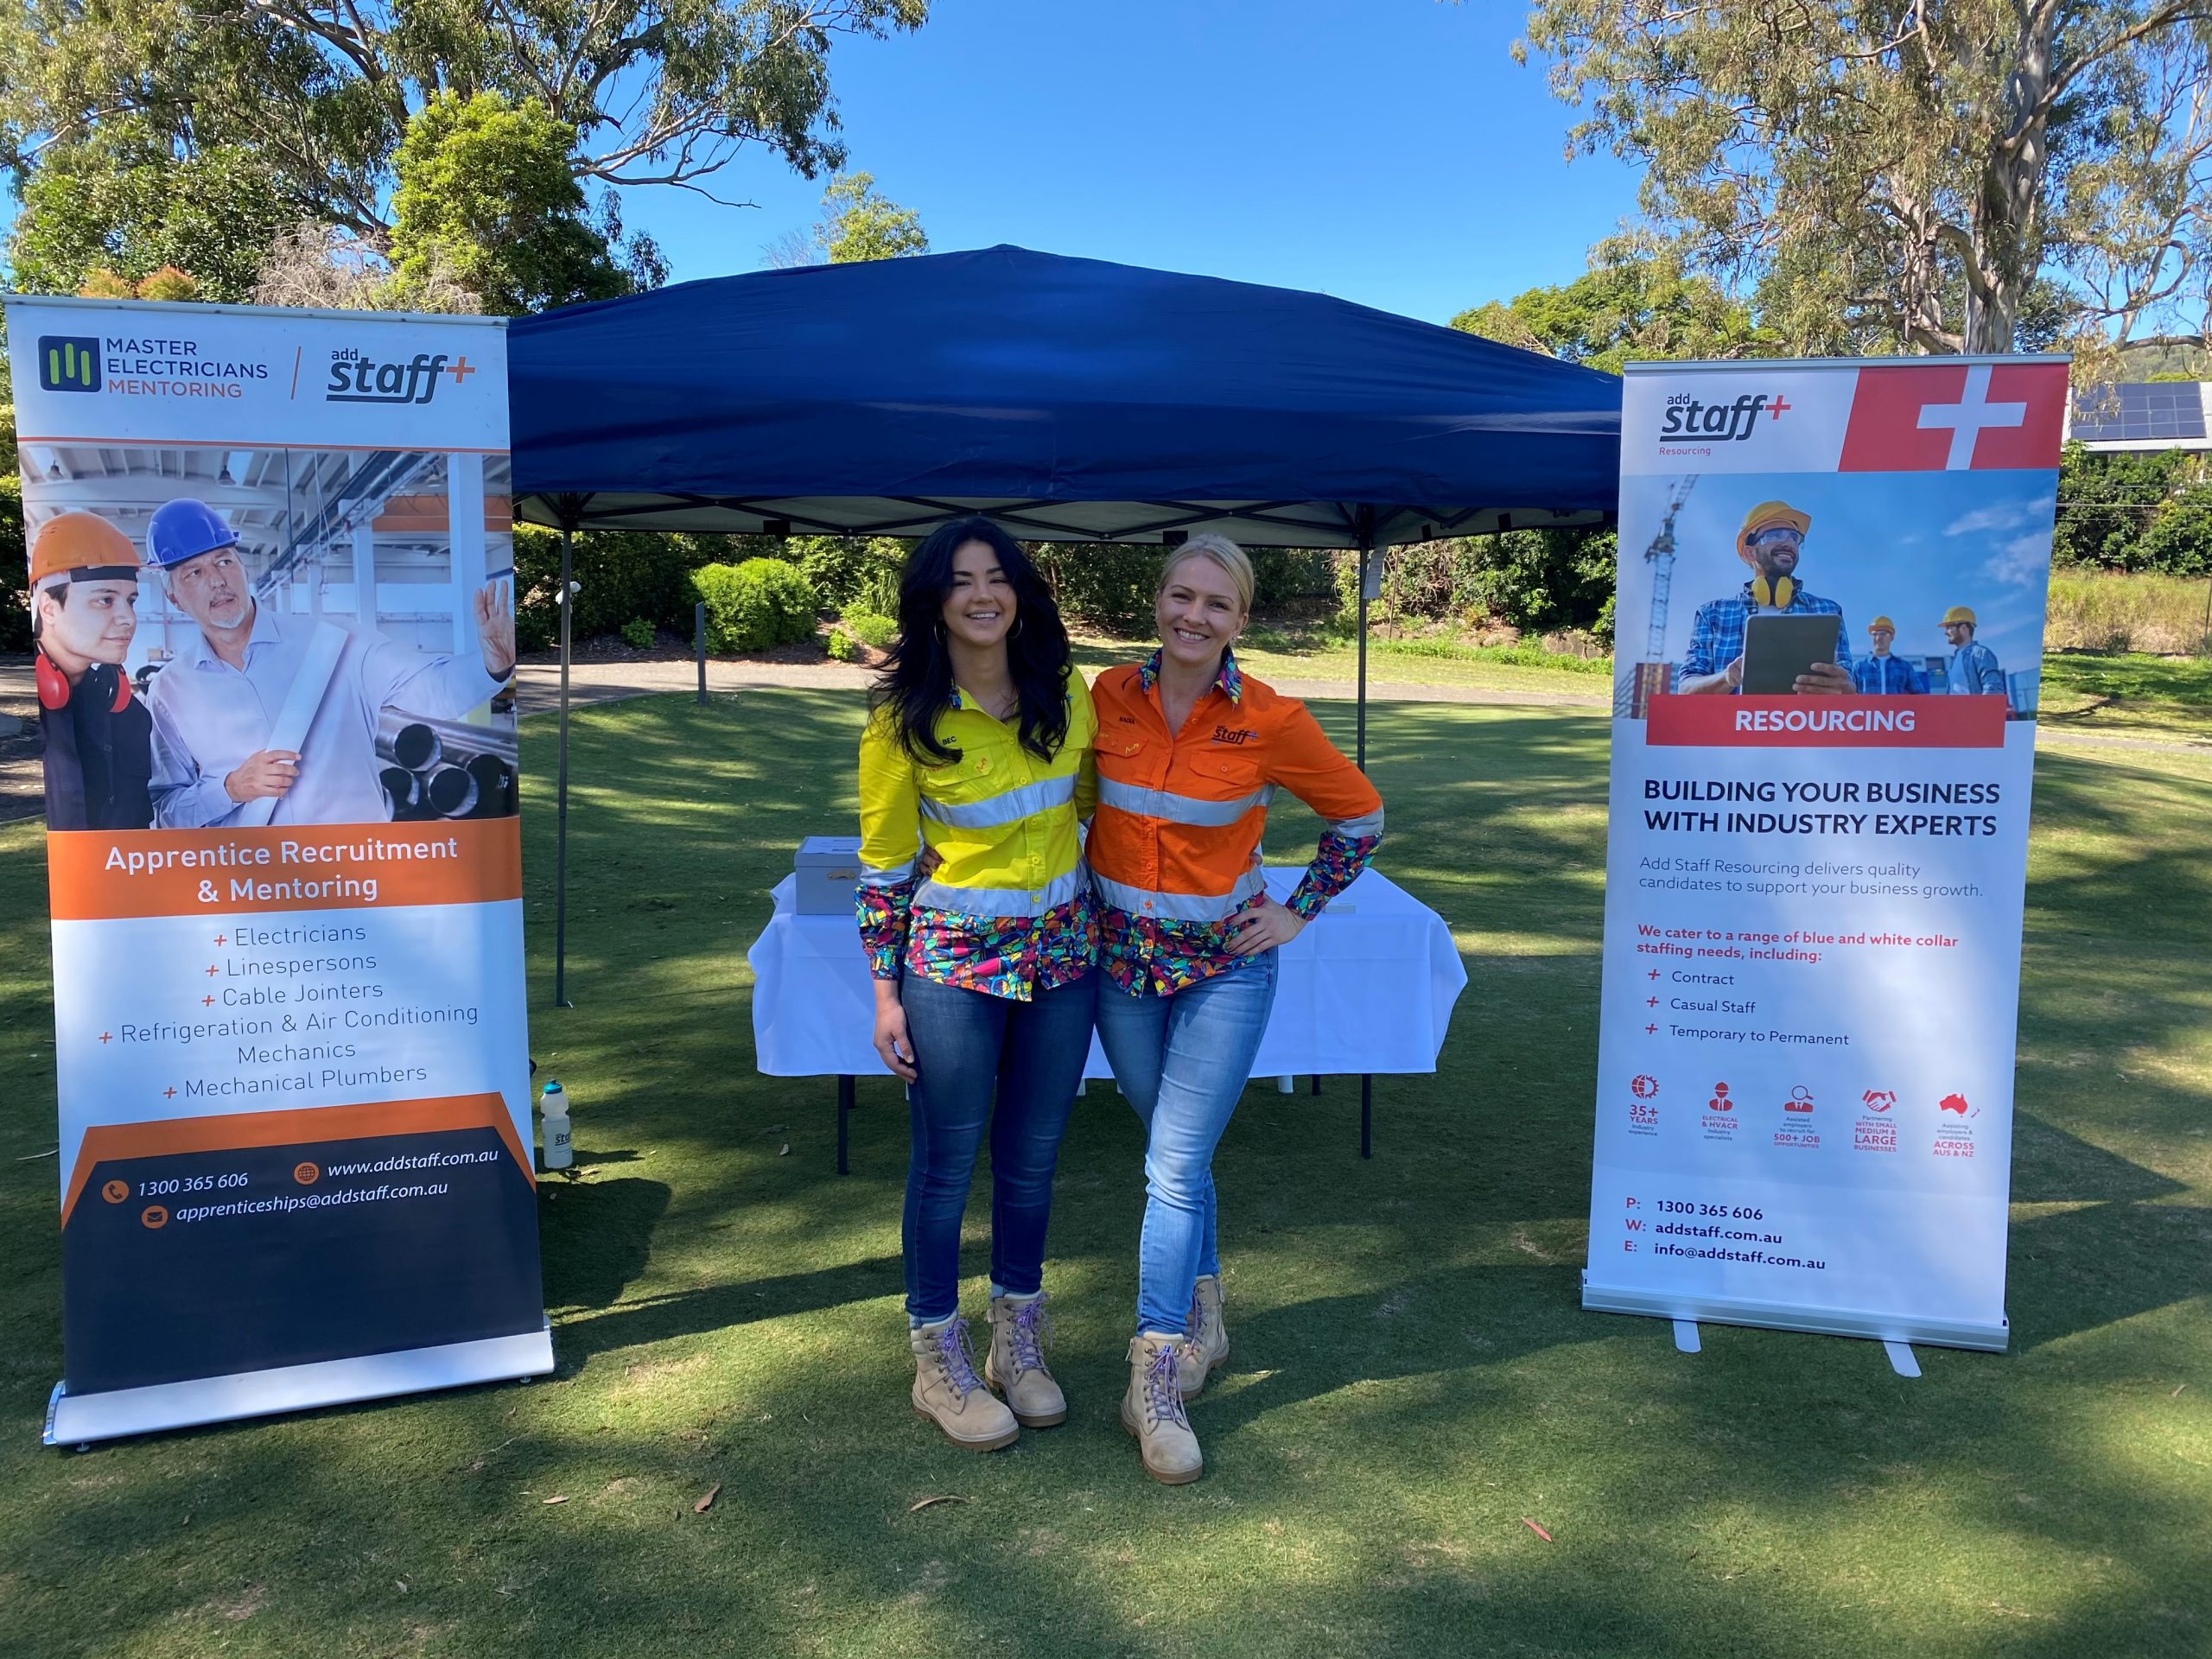 Add Staff Recruitment at Master Electricians Golf Day